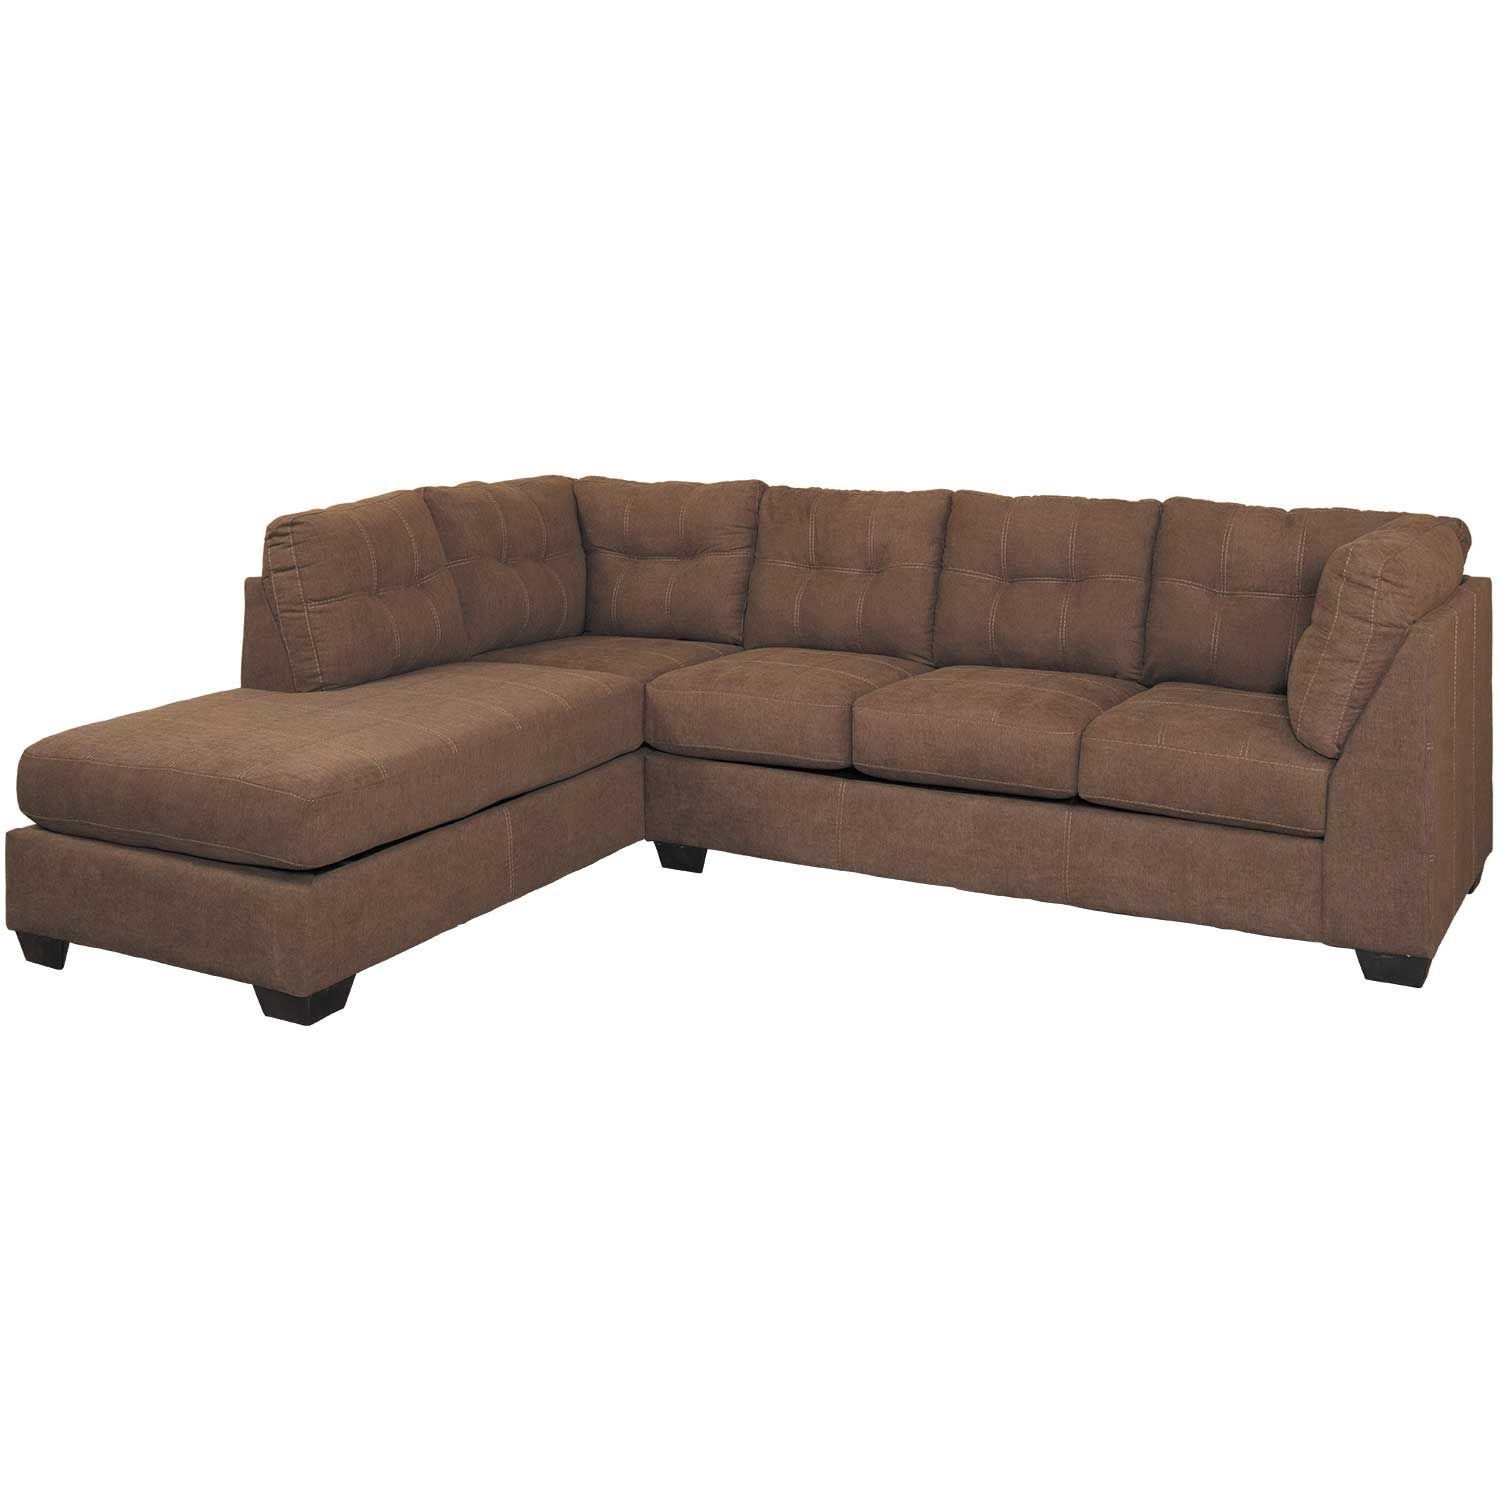 Maier Walnut 2 Piece Sectional With Laf Chaise | 4520116/67 | Ashley for Arrowmask 2 Piece Sectionals With Sleeper & Right Facing Chaise (Image 18 of 30)